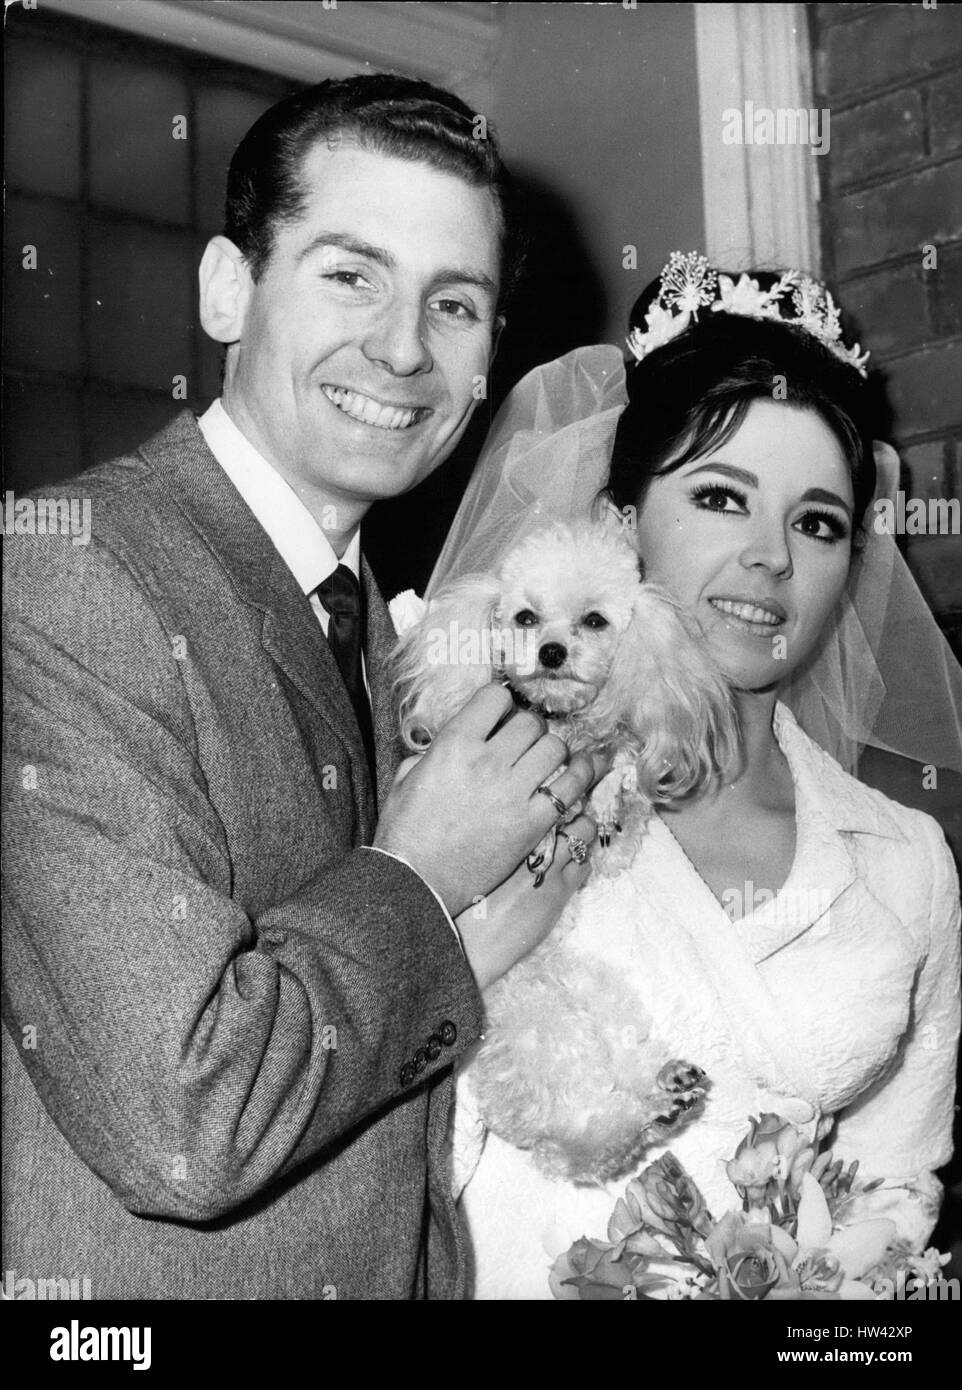 Feb. 02, 1965 - Susan Maugham the pop singer weds at the Hampstead Register Office: Singer Susan Maughan who made Stock Photo